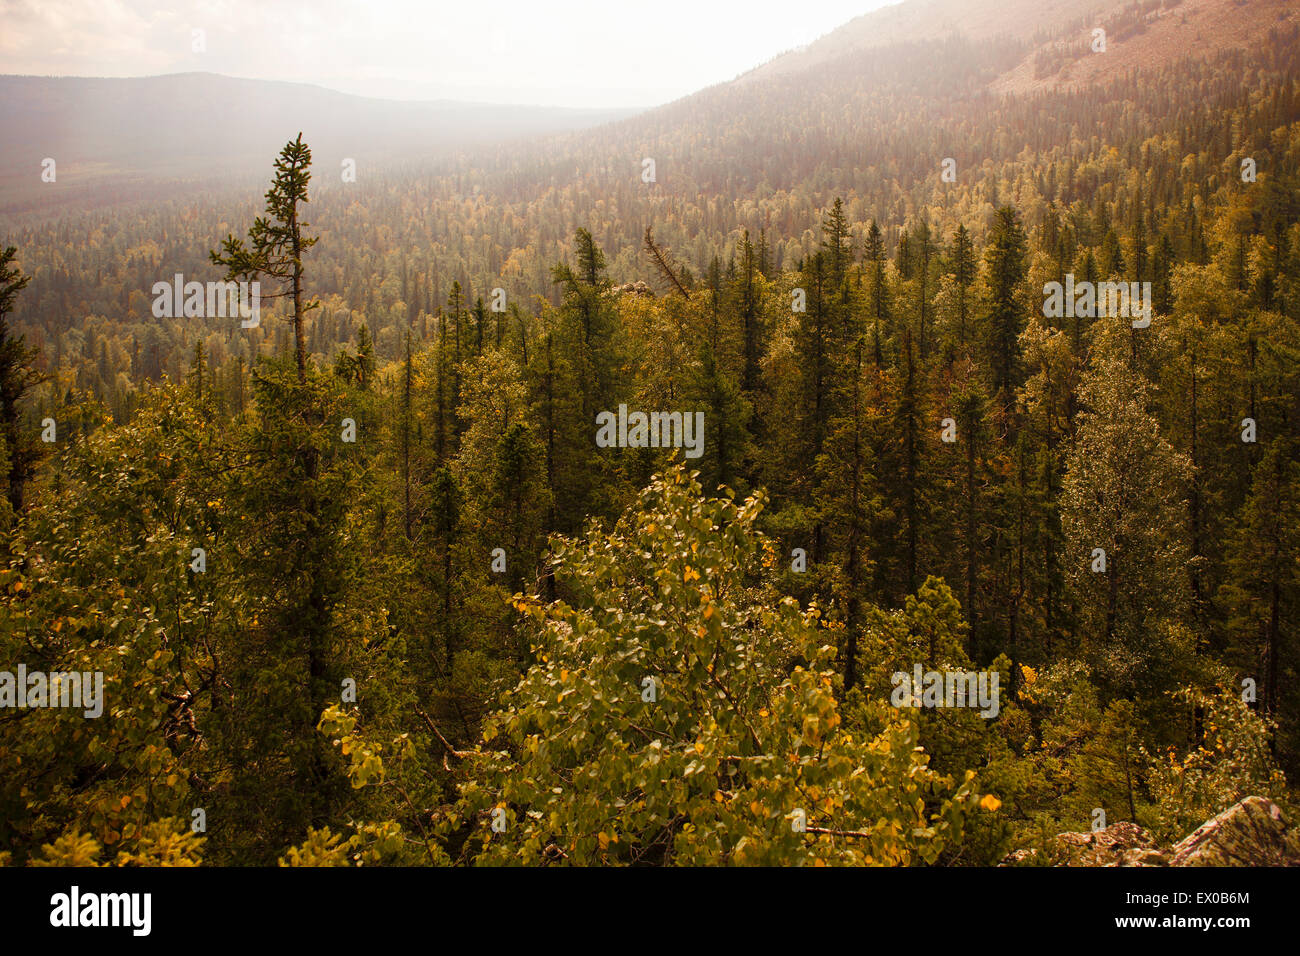 View of forest valley, Sarsy Village, Sverdlovsk Oblast, Russia - Stock Image